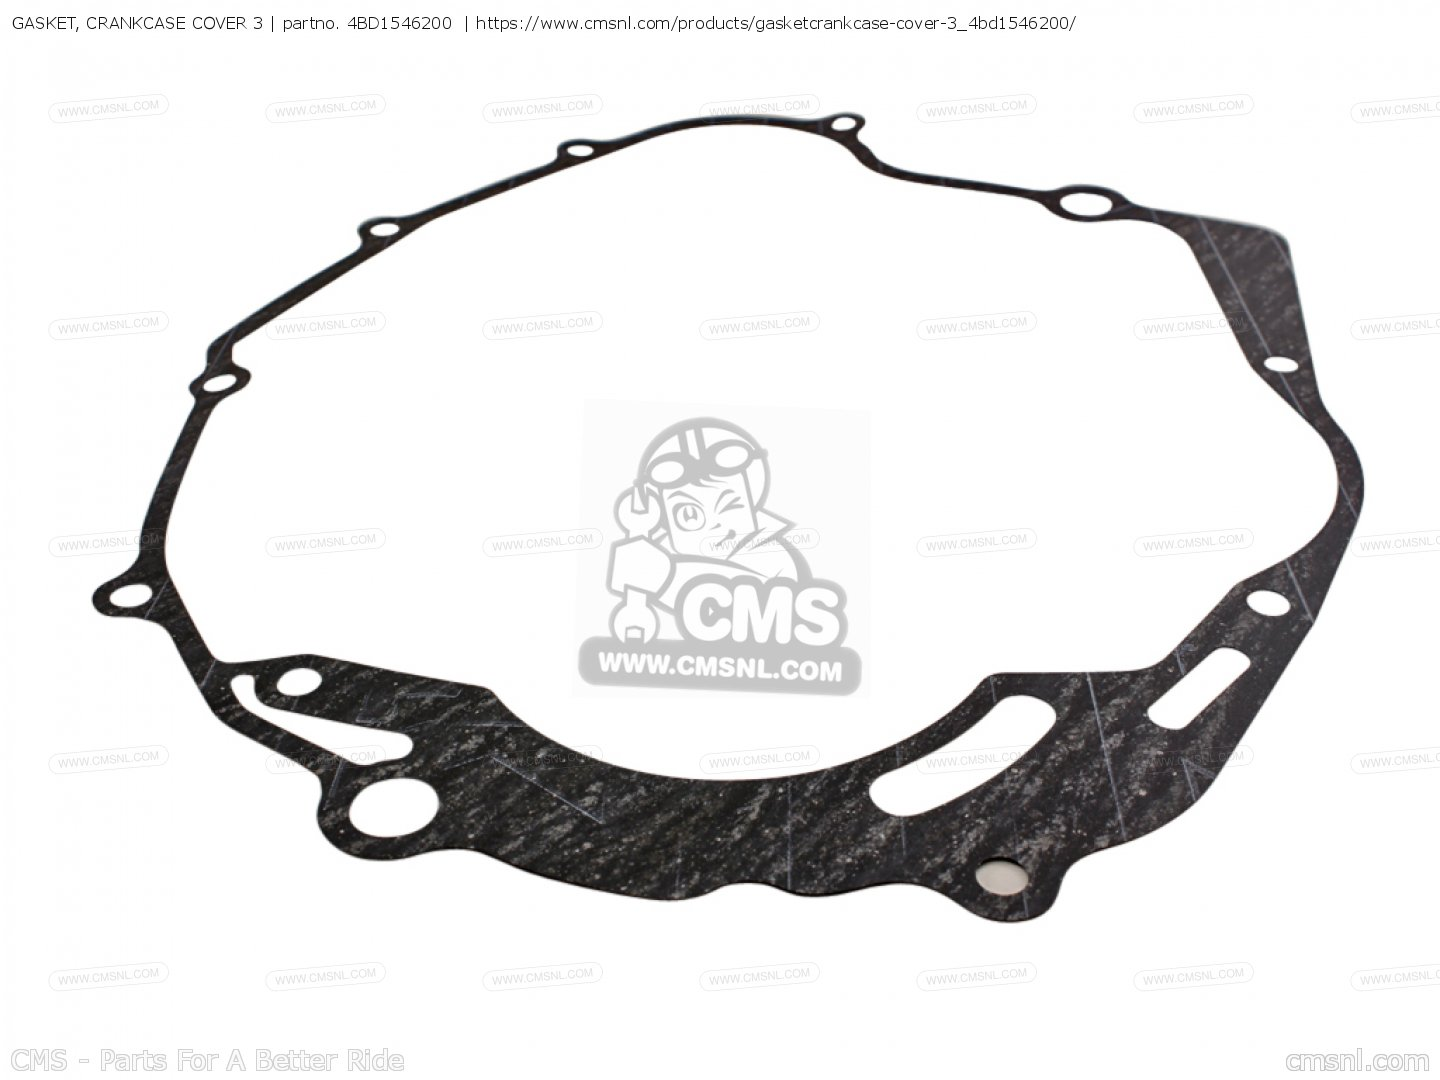 GASKET, CRANKCASE COVER 3 for YFB250D TIMBERWOLF MAINE AND